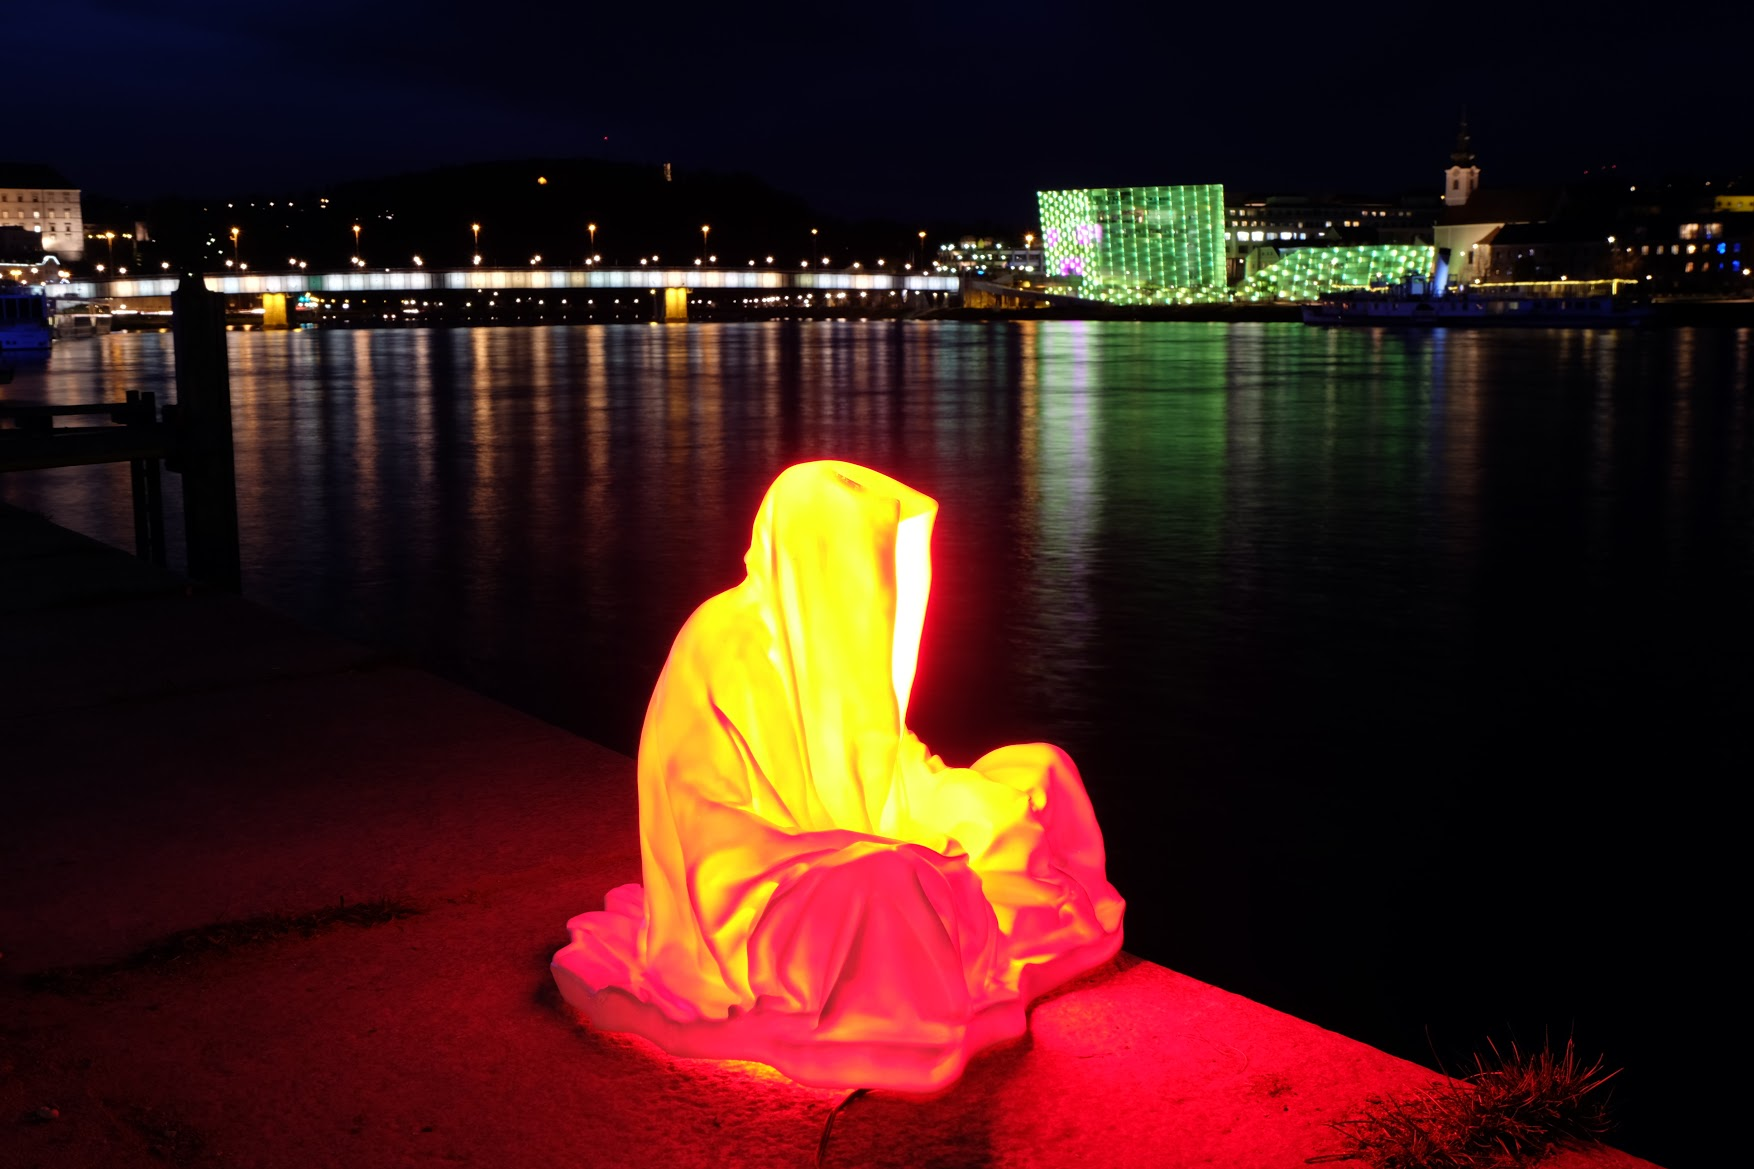 guardians of time manfred kielnhofer linz light art contemporary art sculpture statue modern design lamp light lumina 1779